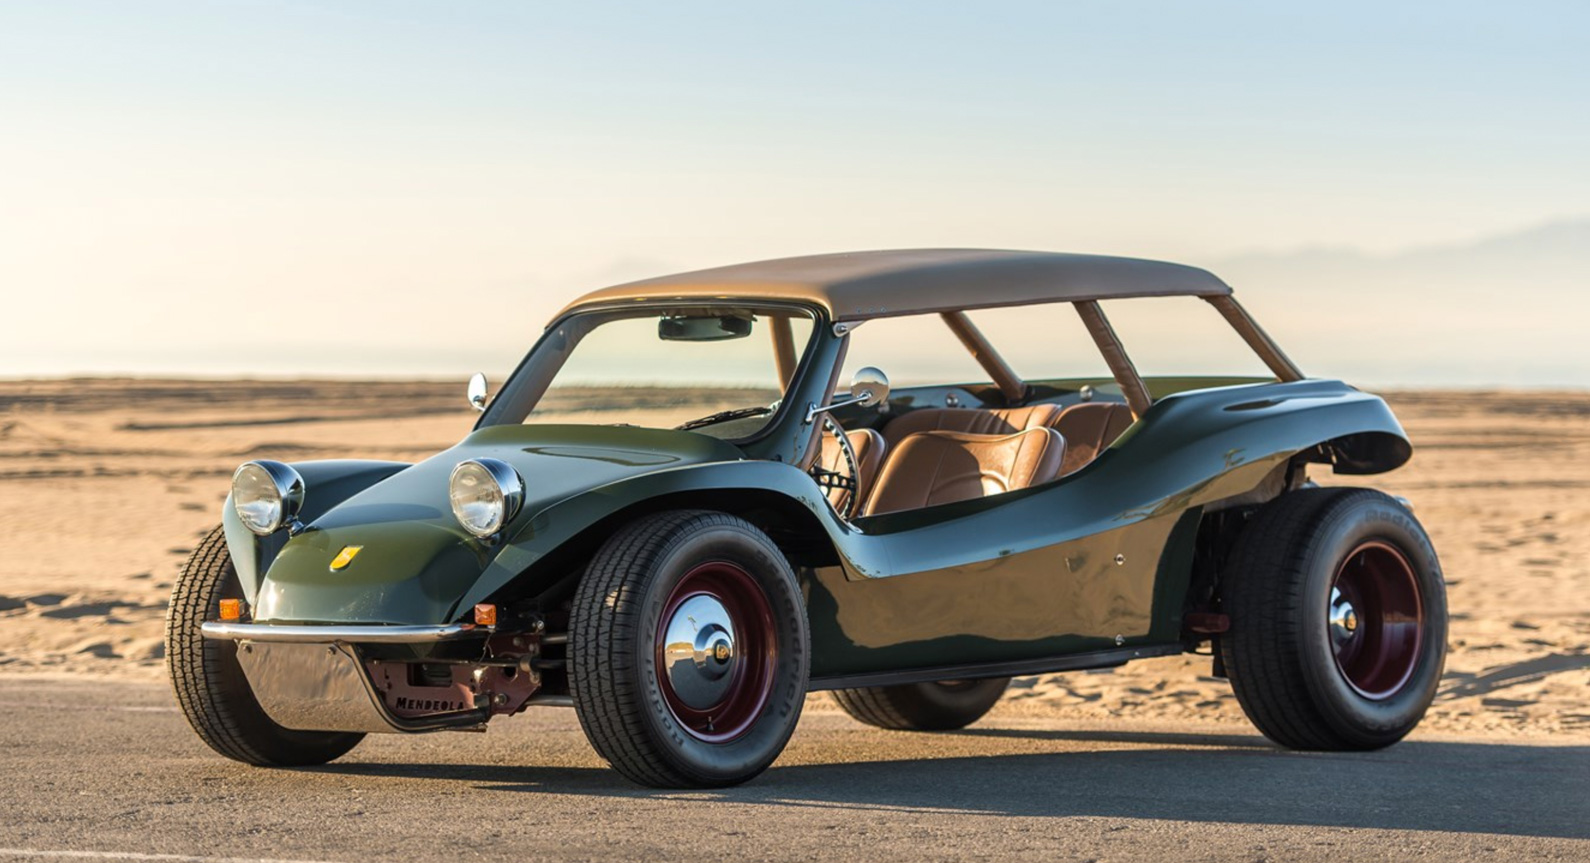 The Original American Dune Buggy – The 1965 Meyers Manxter 2+2